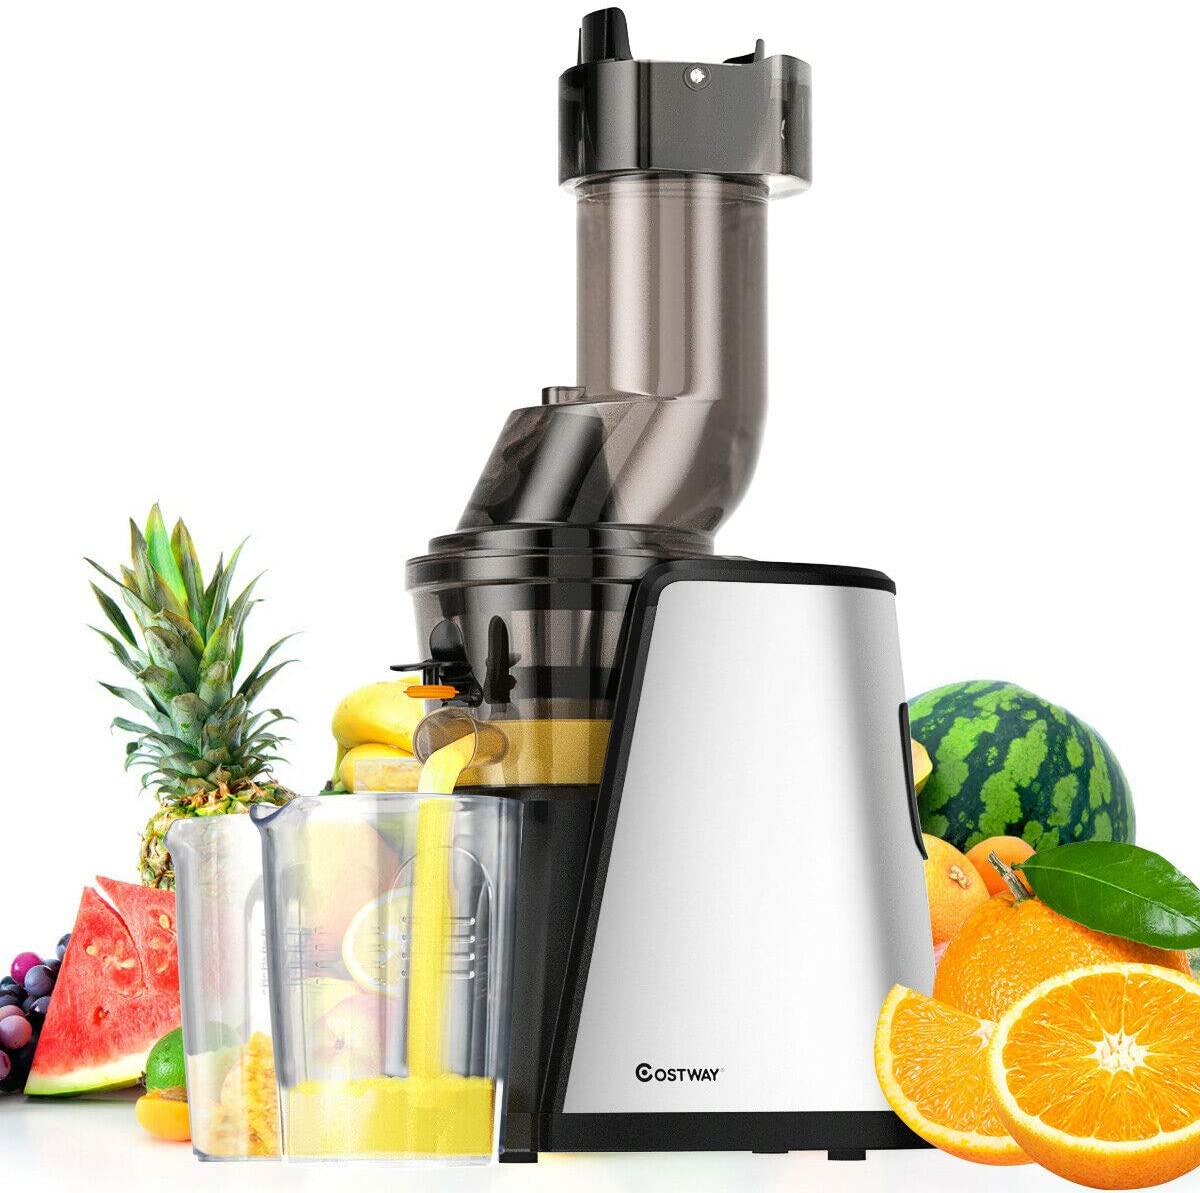 COSTWAY Slow Juicer Masticating Machine with 3.4 inch Wide Chute, Stainless Steel Juicer Extractor with Cold Press Masticating Squeezer Technology, Quiet Motor & Reverse Function, Easy-to-Clean, BPA-Free